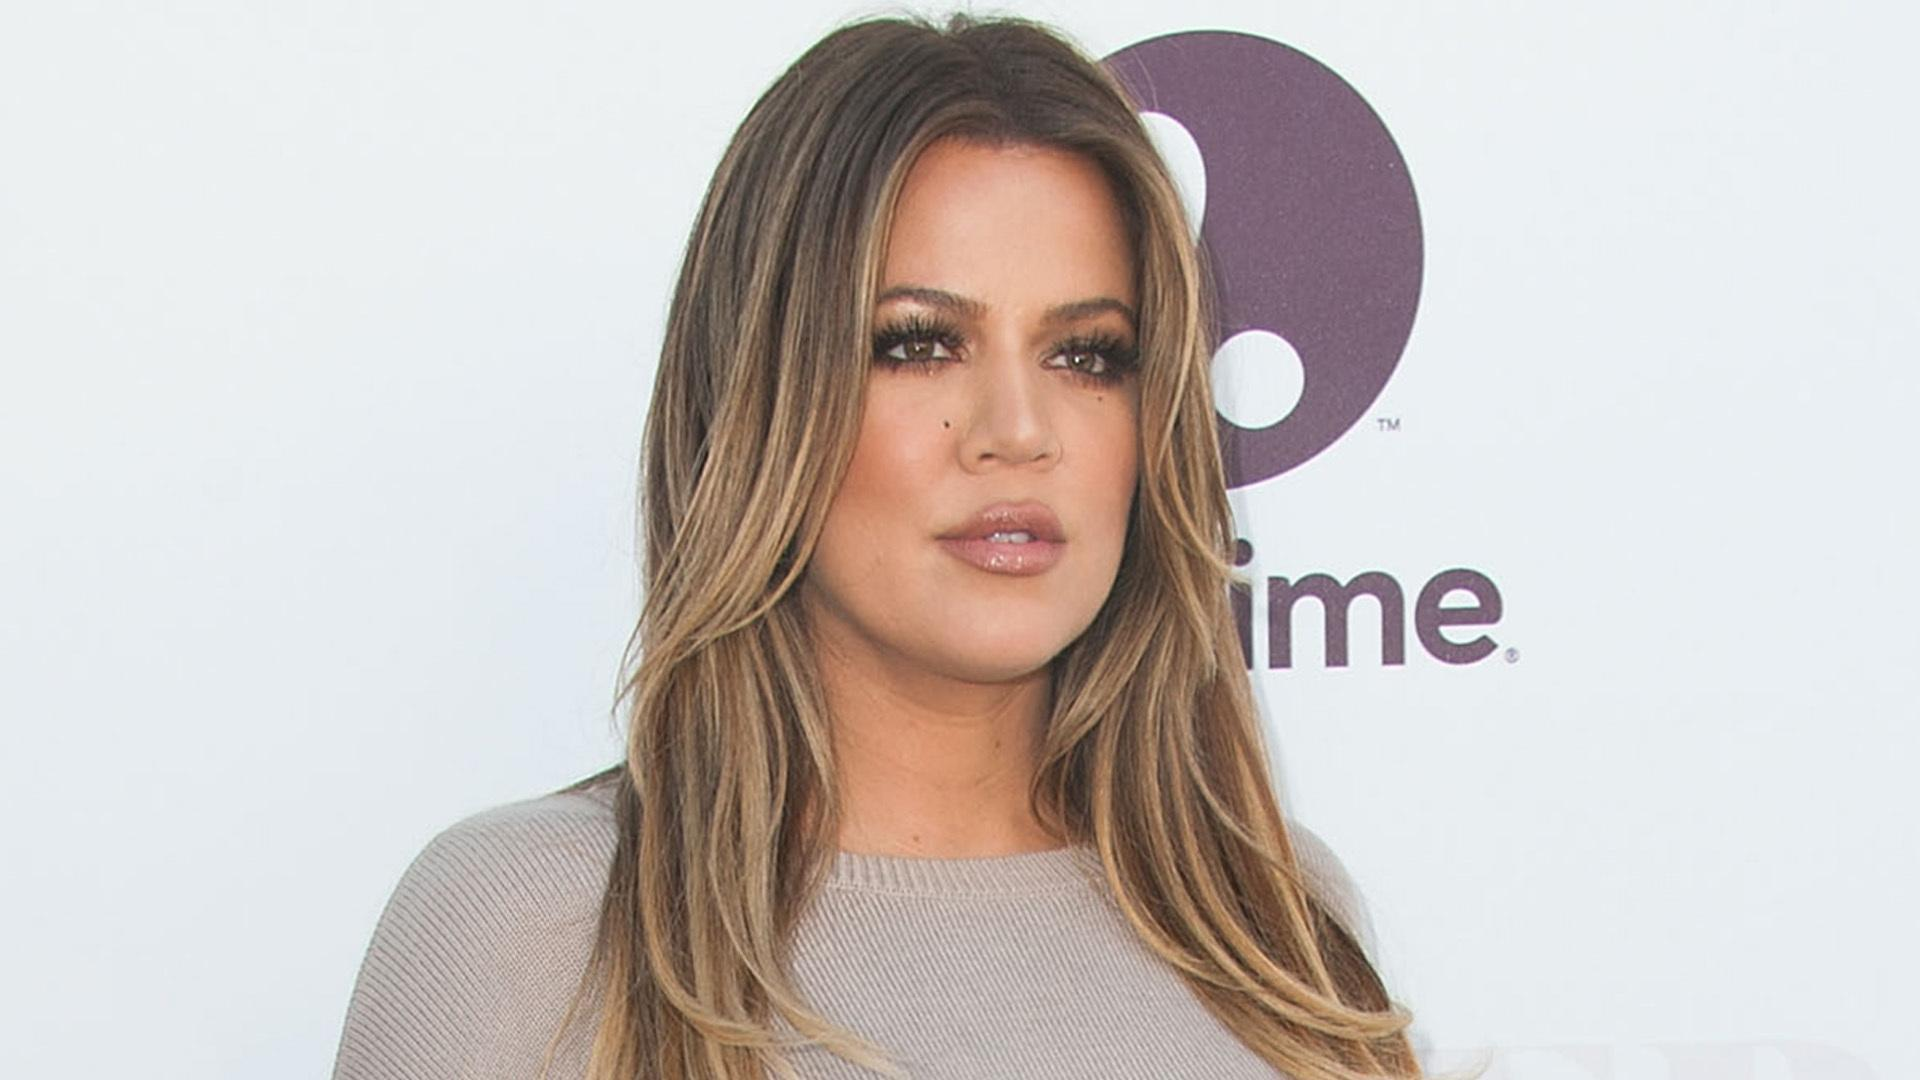 Khloe Kardashian Wallpapers Images Photos Pictures Backgrounds Khloe Kardashian Hot Wallpapers